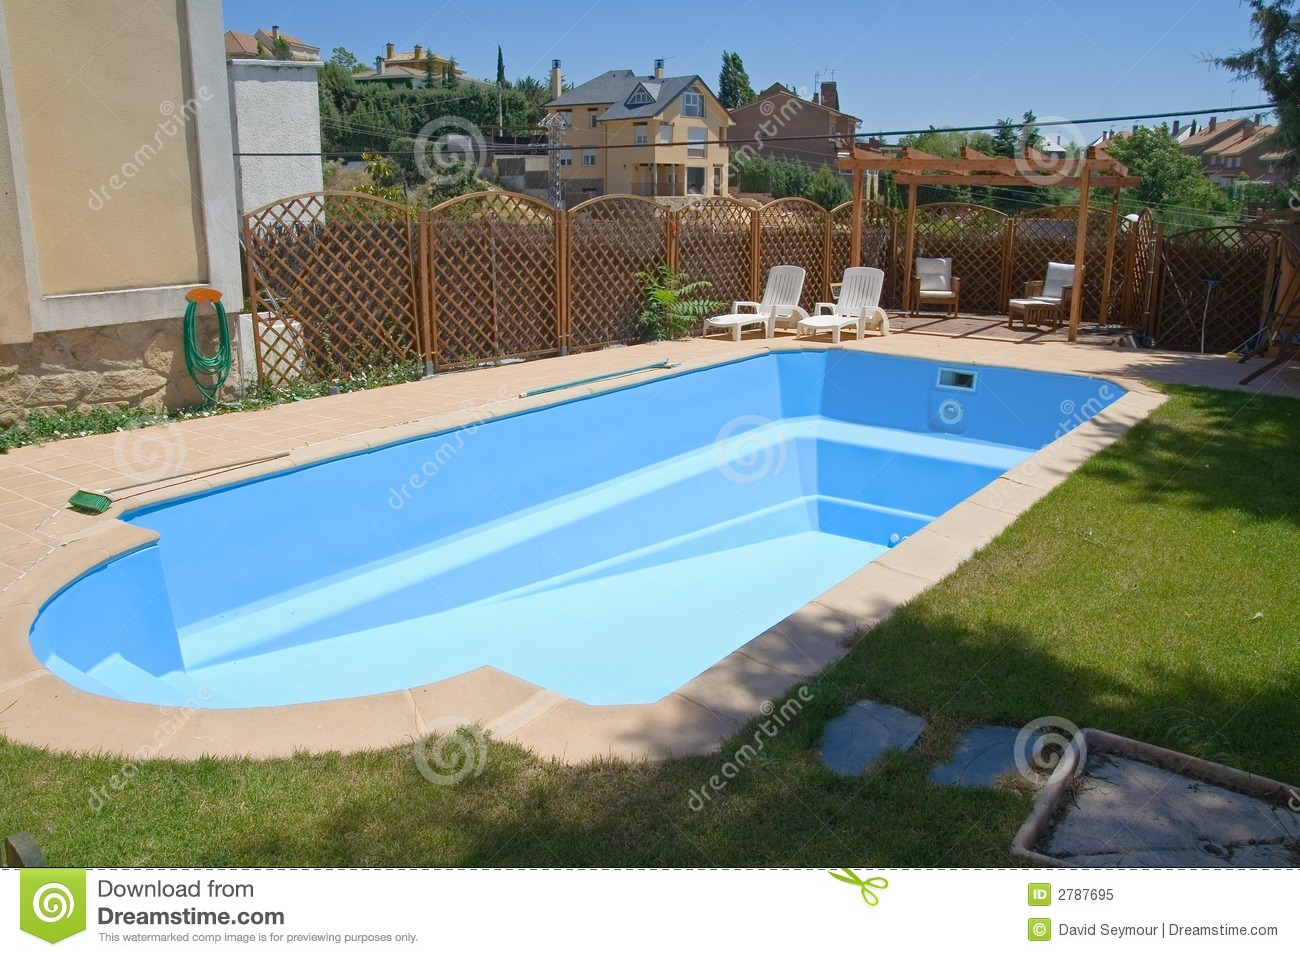 New swimming pool in a garden royalty free stock photo for New swimming pool